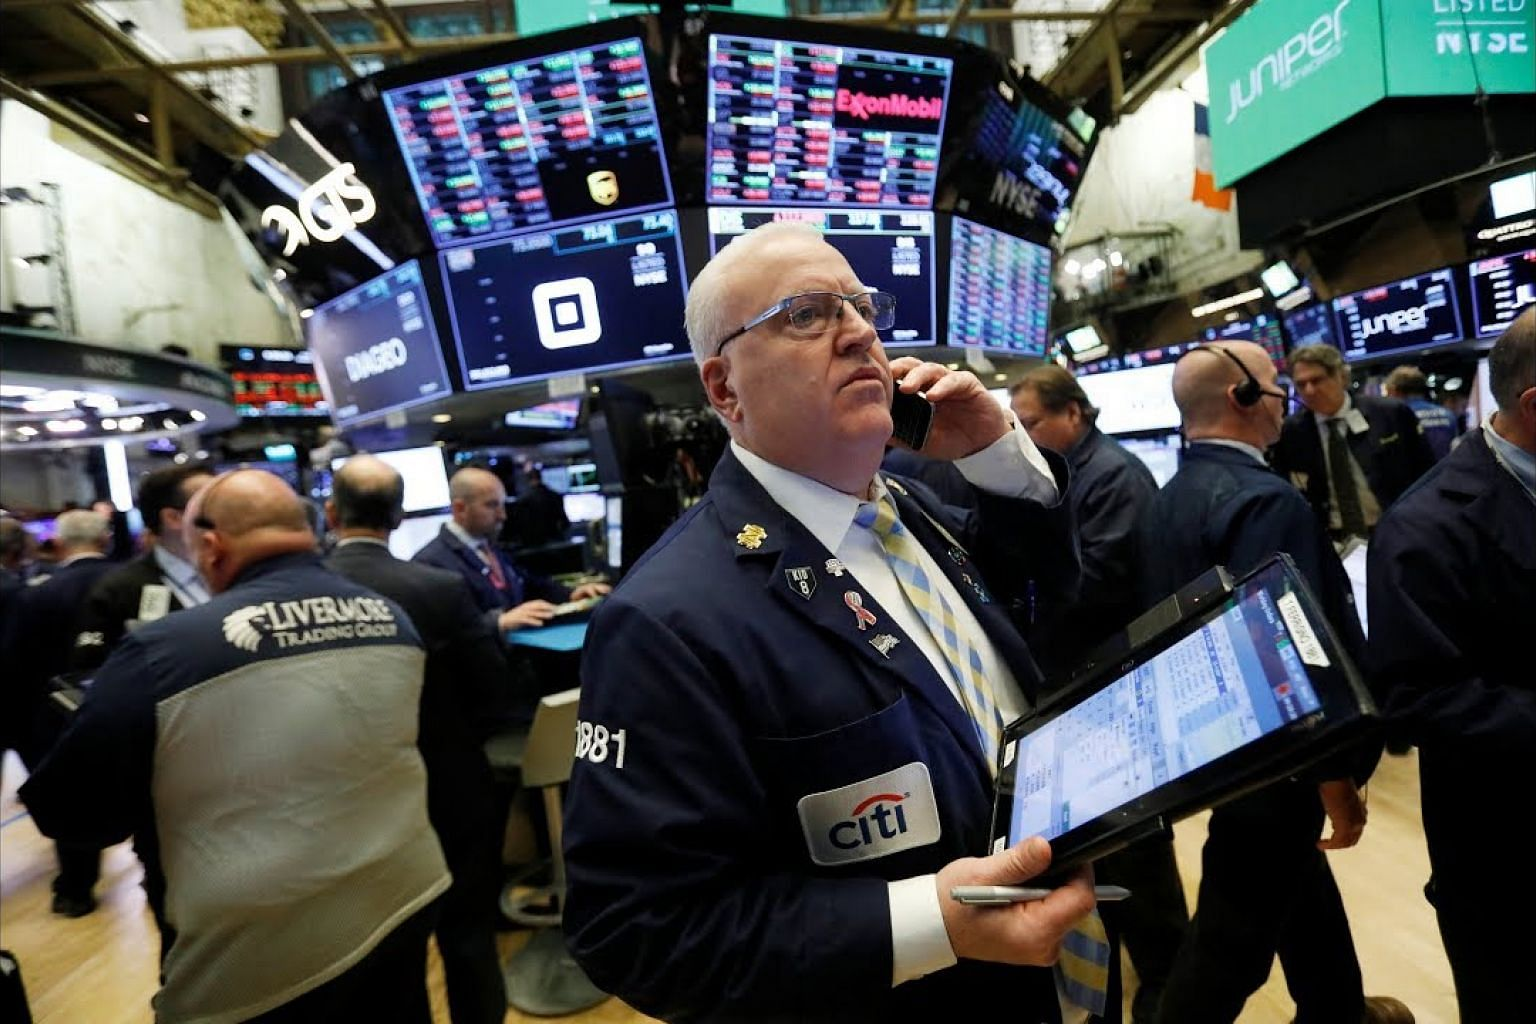 Wall St drops on worries over China, oil prices